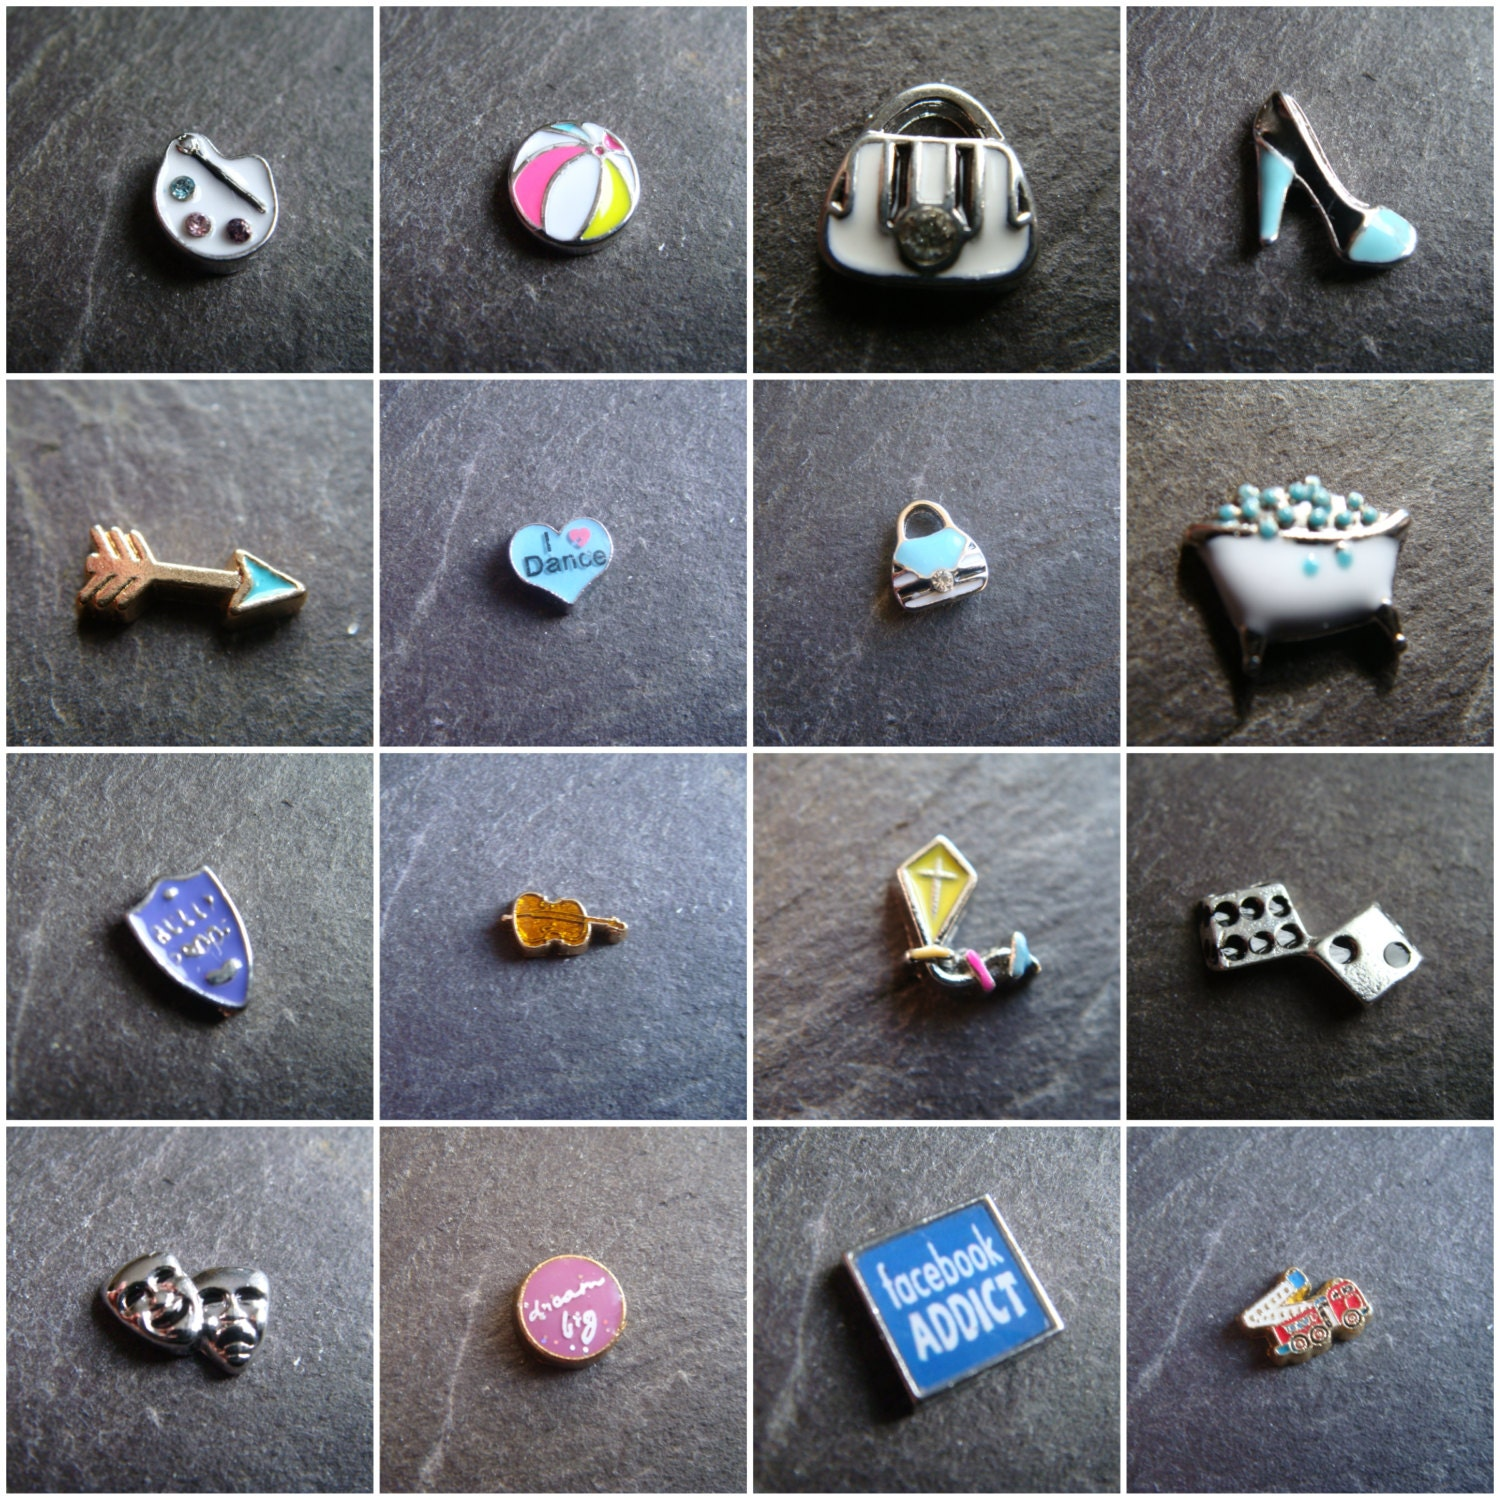 Hobbies  Occupations Floating Charms  for Floating Memory Lockets